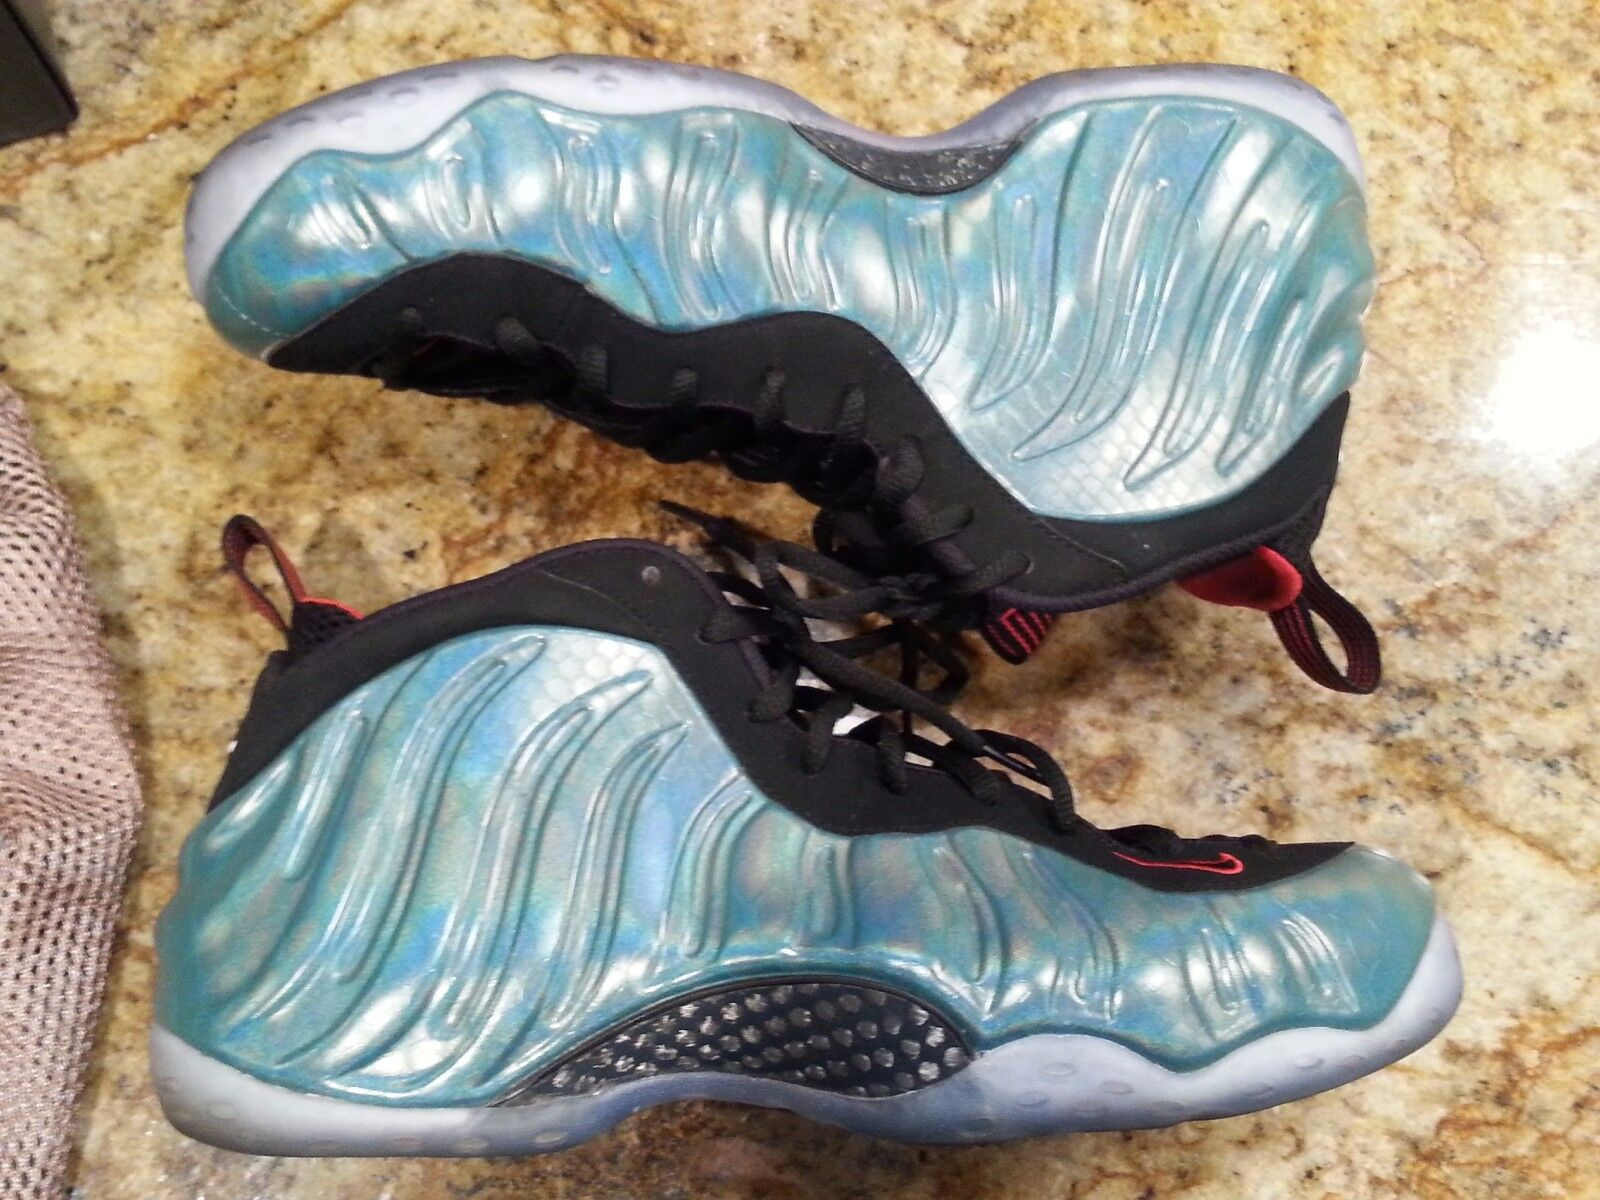 NIKE AIR FOAMPOSITE ONE GONE FISHING Size 13. 575420-300 jordan penny